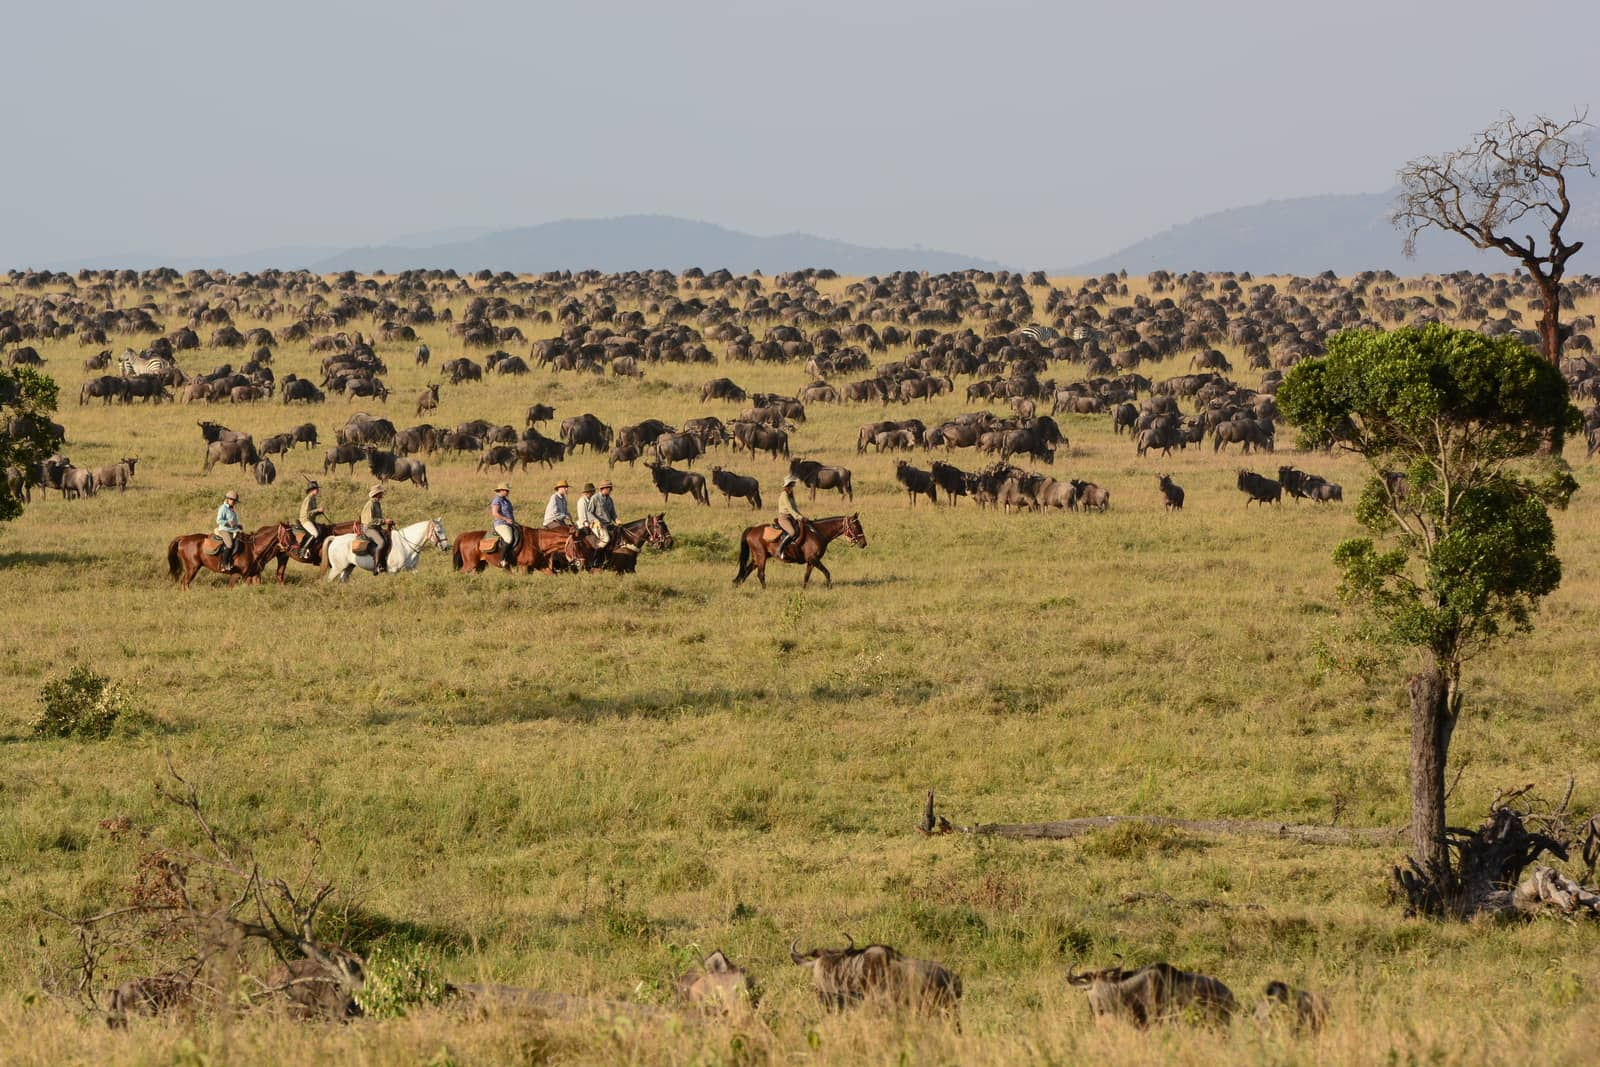 Horse riding with wildebeest migration